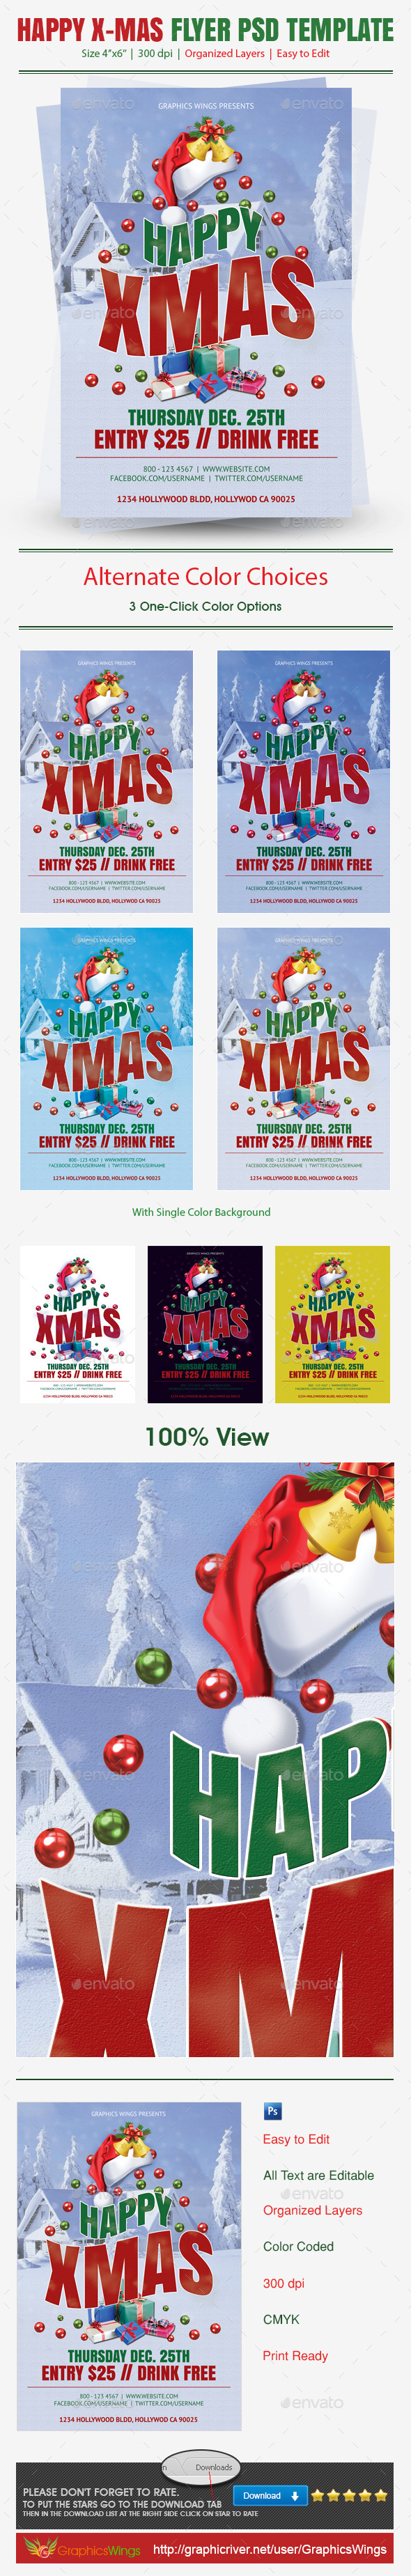 Happy Xmas Flyer PSD Template - Clubs & Parties Events